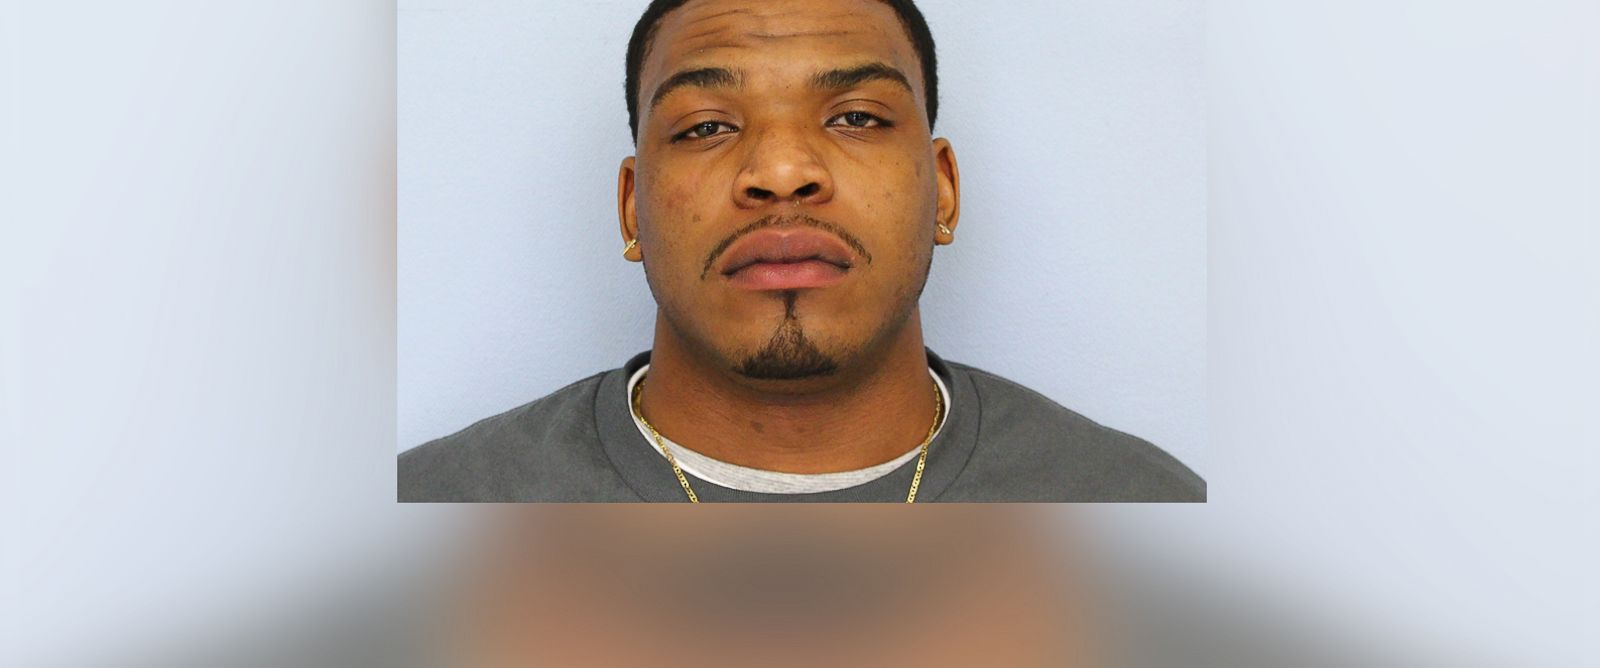 PHOTO: Markale Deandra Hart,, 22, of Camp Hill, Ala., was arrested Sunday, Dec. 14, 2014, on a felony warrant charging him with murder in the death of Auburn football player Jakell Mitchell.